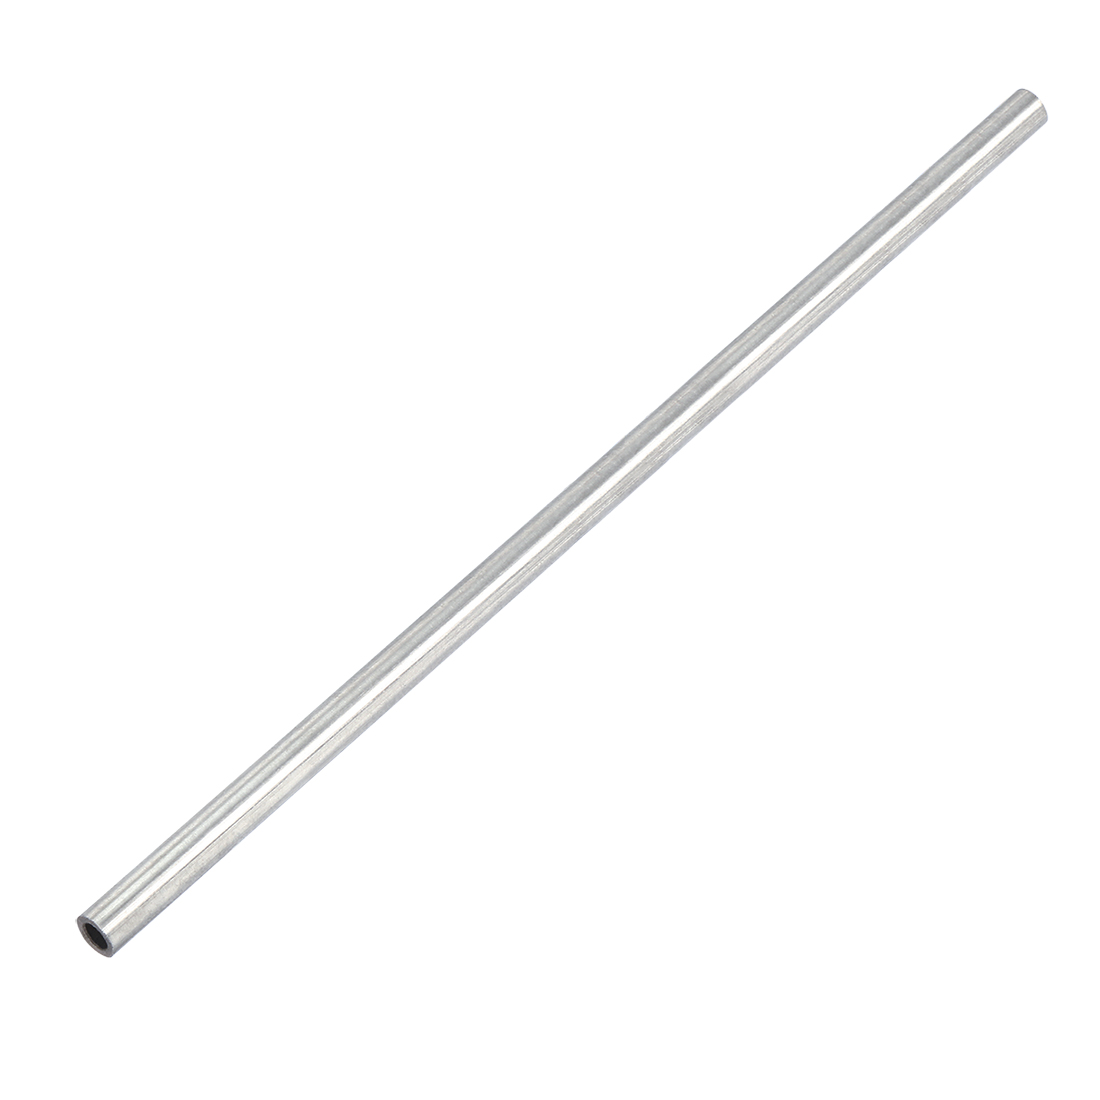 3mmx2mm 304 Stainless Steel Round Shaft Rod Axle 130mm Length for RC Toy Car